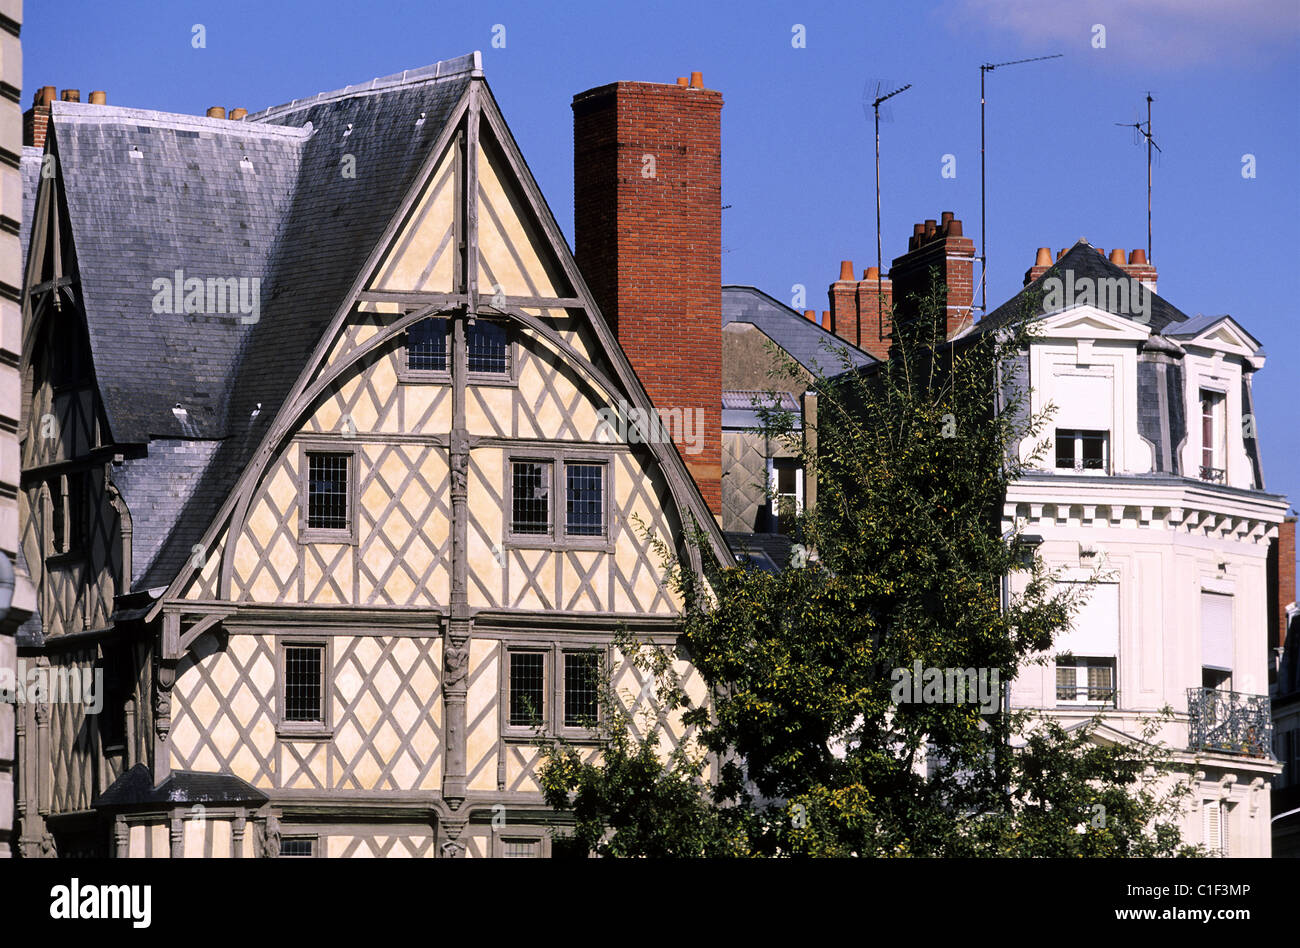 16th Century French Home - france-maine-and-loire-angers-house-of-adam-dating-from-the-16th-century-C1F3MP_Great 16th Century French Home - france-maine-and-loire-angers-house-of-adam-dating-from-the-16th-century-C1F3MP  Pic_39258.jpg